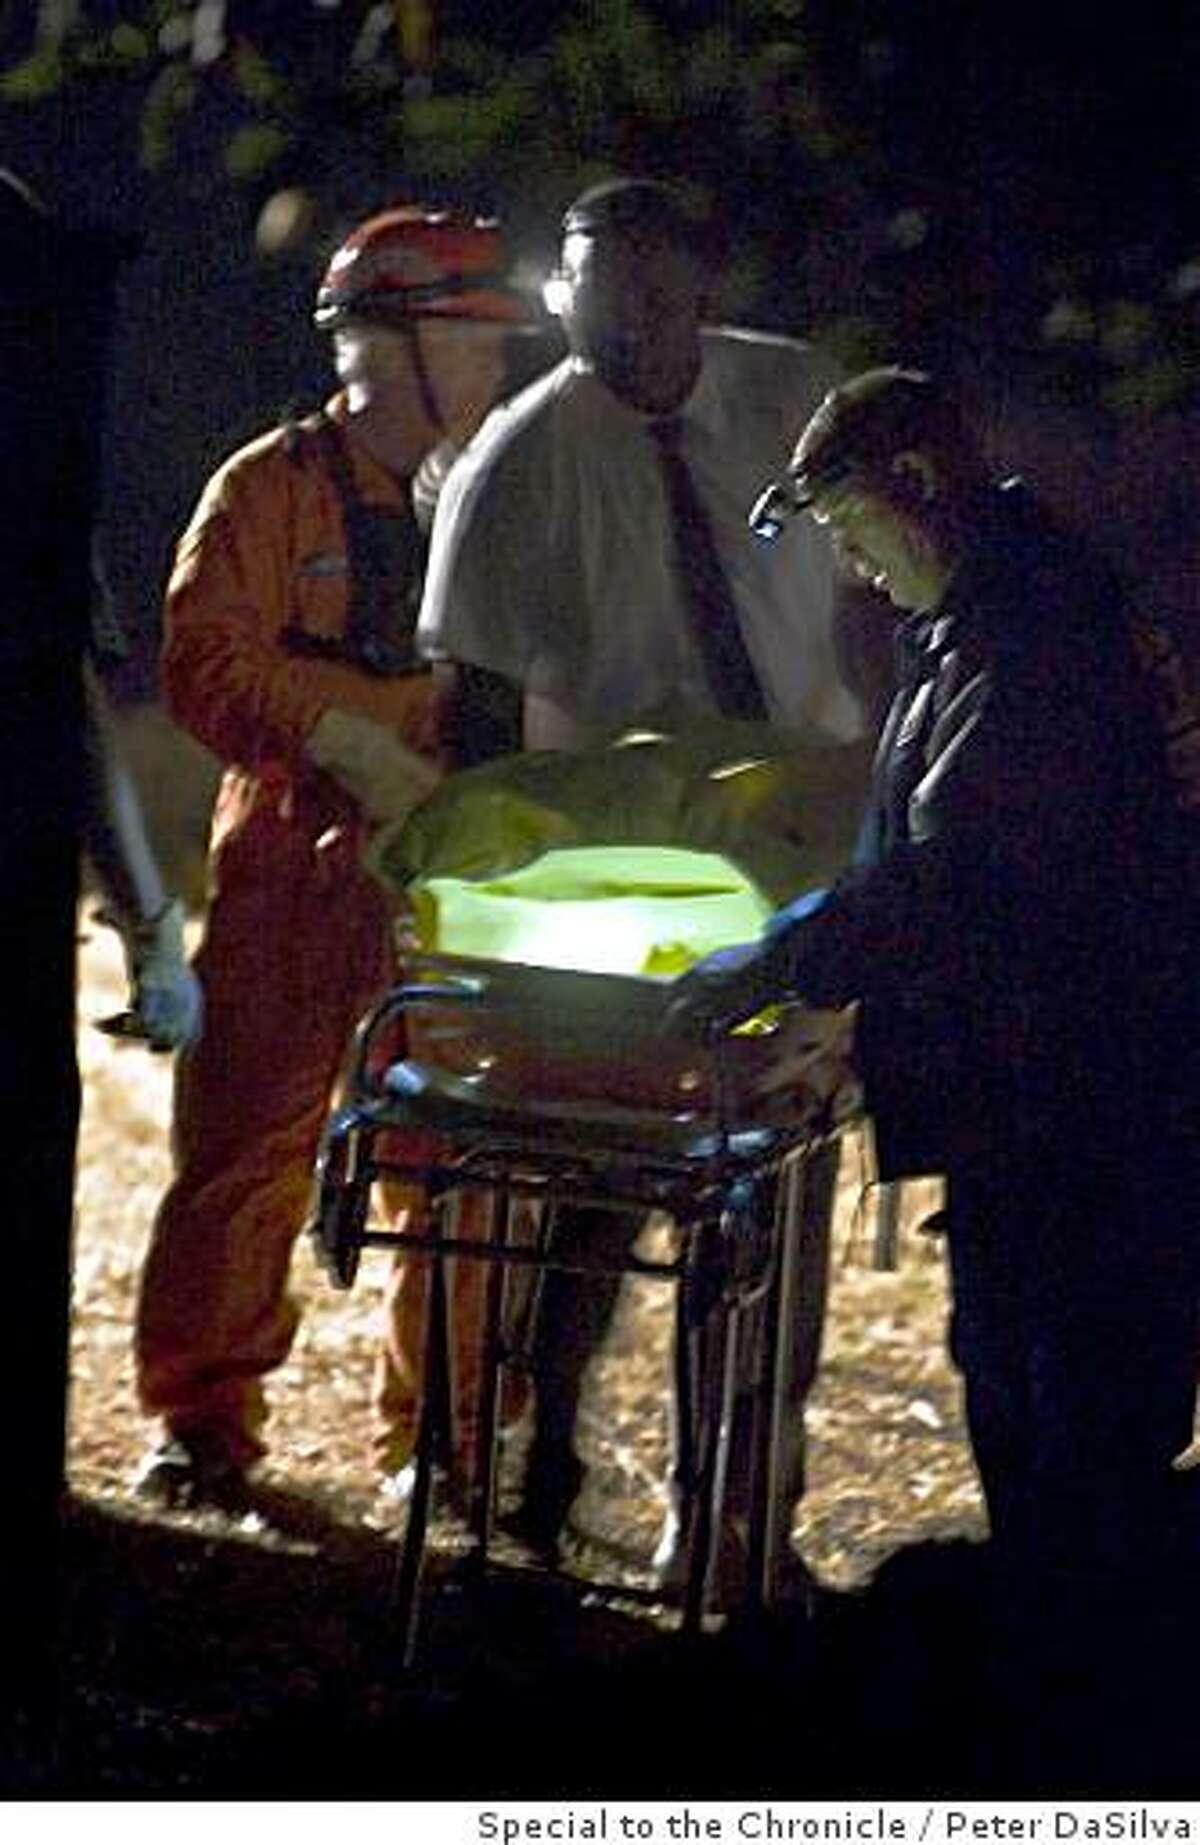 Alameda County Sheriff Coroner's Bureau and other recovery personnel, prepare to load the remains of a body for transportation after authorities recovered them near a hiking trail off Skyline Blvd. in the Oakland Hills on July 08, 2008.Photo By: Peter DaSilvaSpecial to the Chronicle